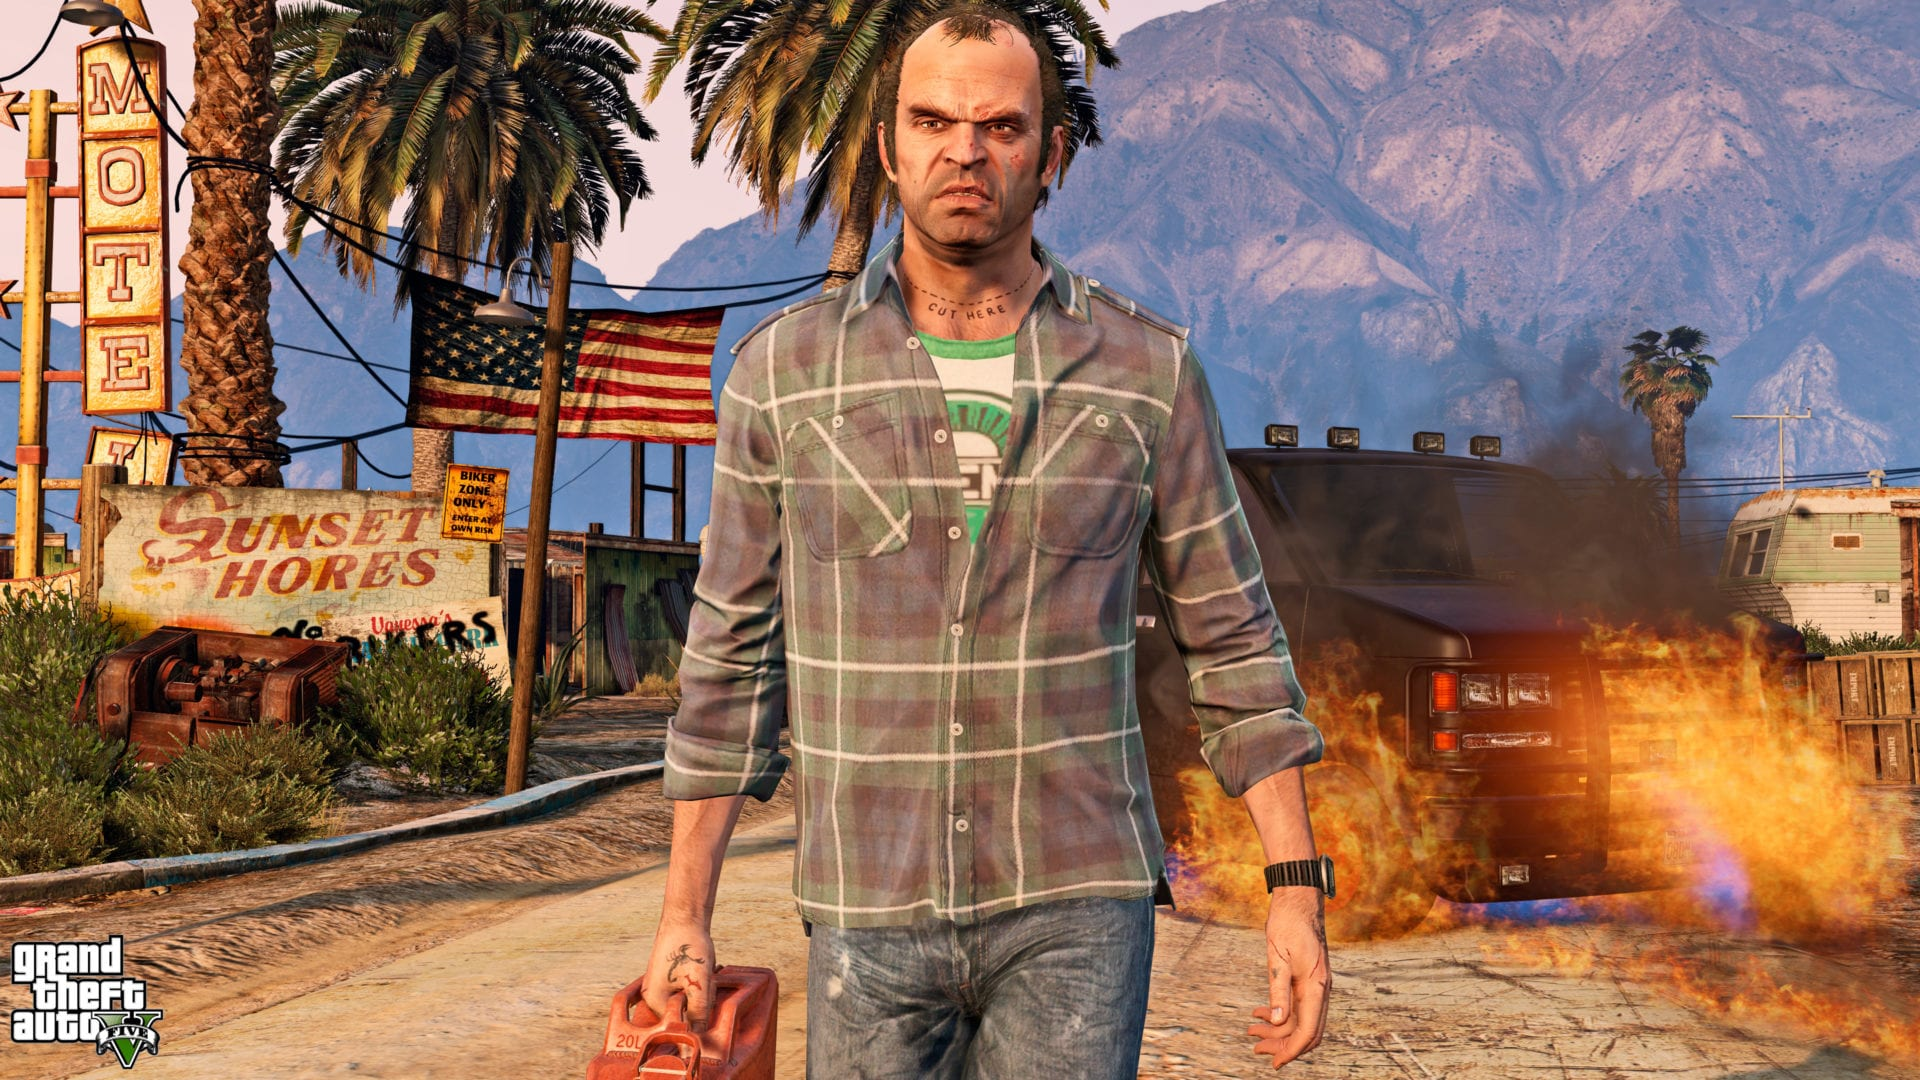 rockstar sale, end of winter, discounts, grand theft auto, red dead redemption 2